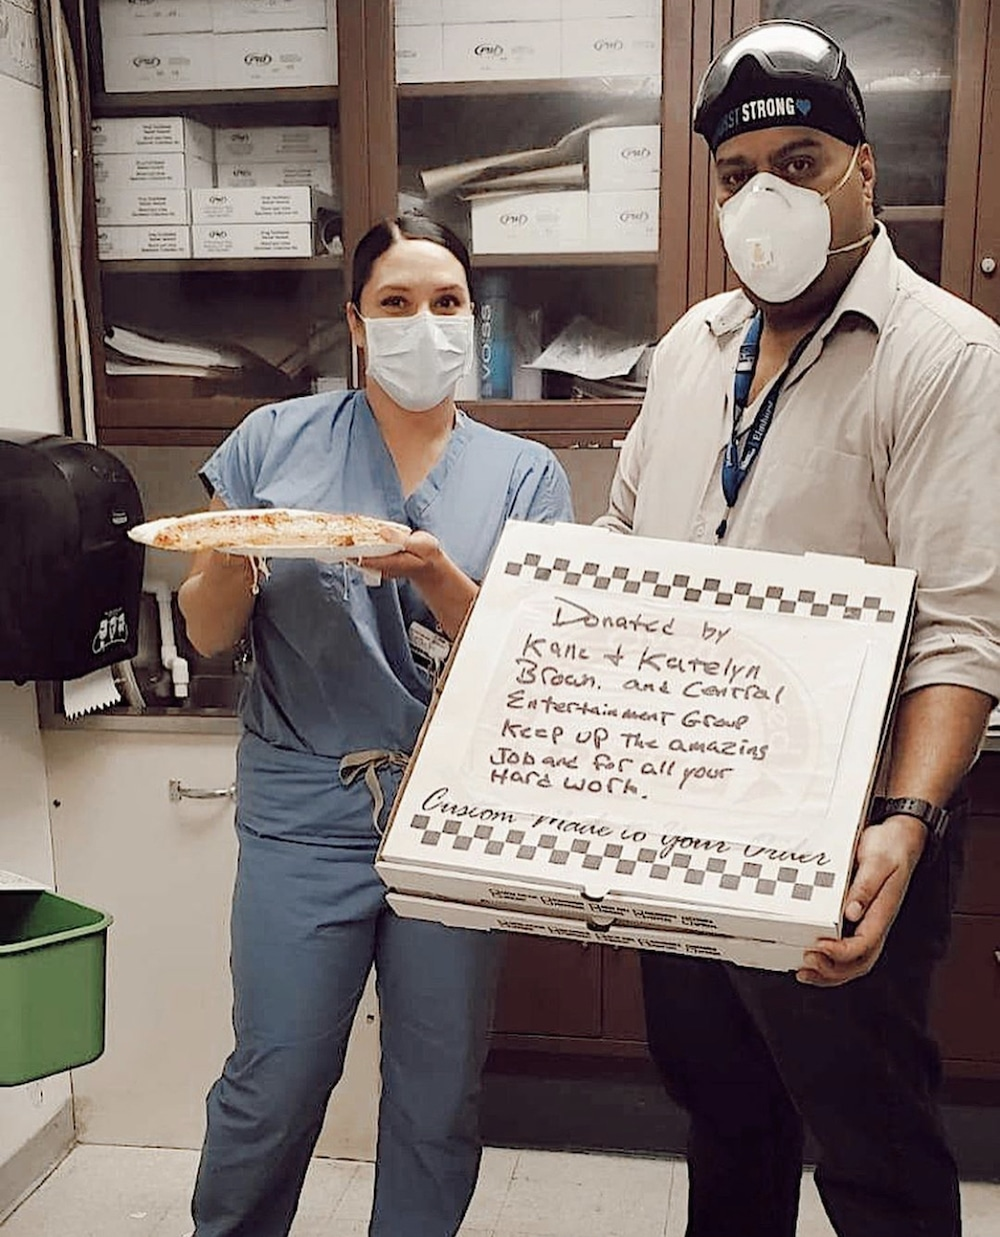 a photo of hospital workers receiving free pizza donated by country music star Kane Brown